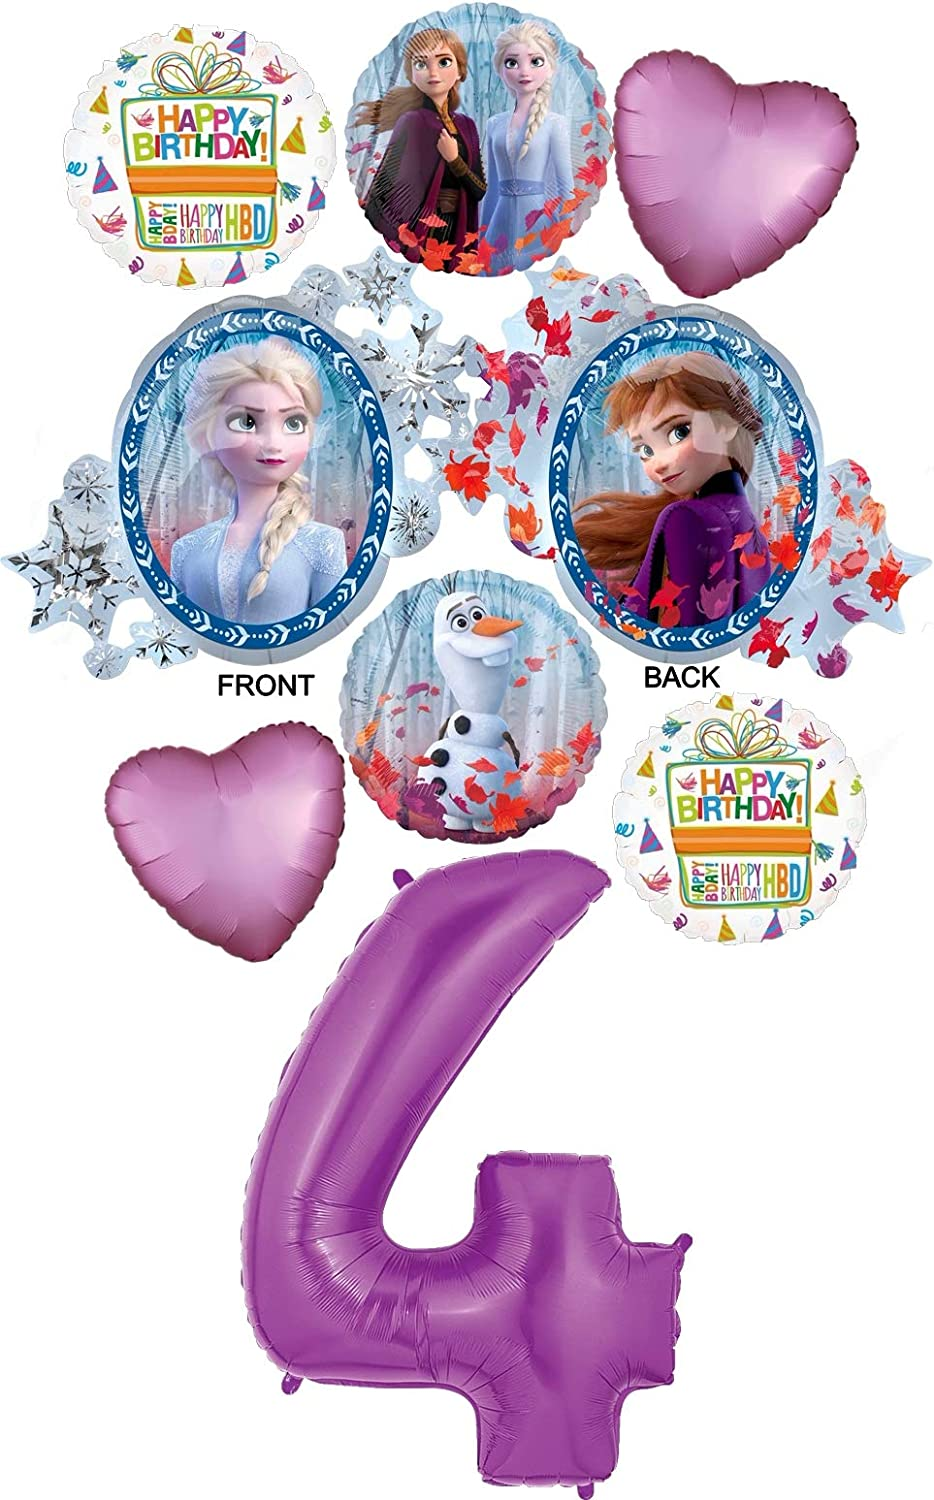 Purple Number 4 Anna and Olaf Balloon Bouquet Decorations Frozen 2 Party Supplies 4th Birthday Elsa